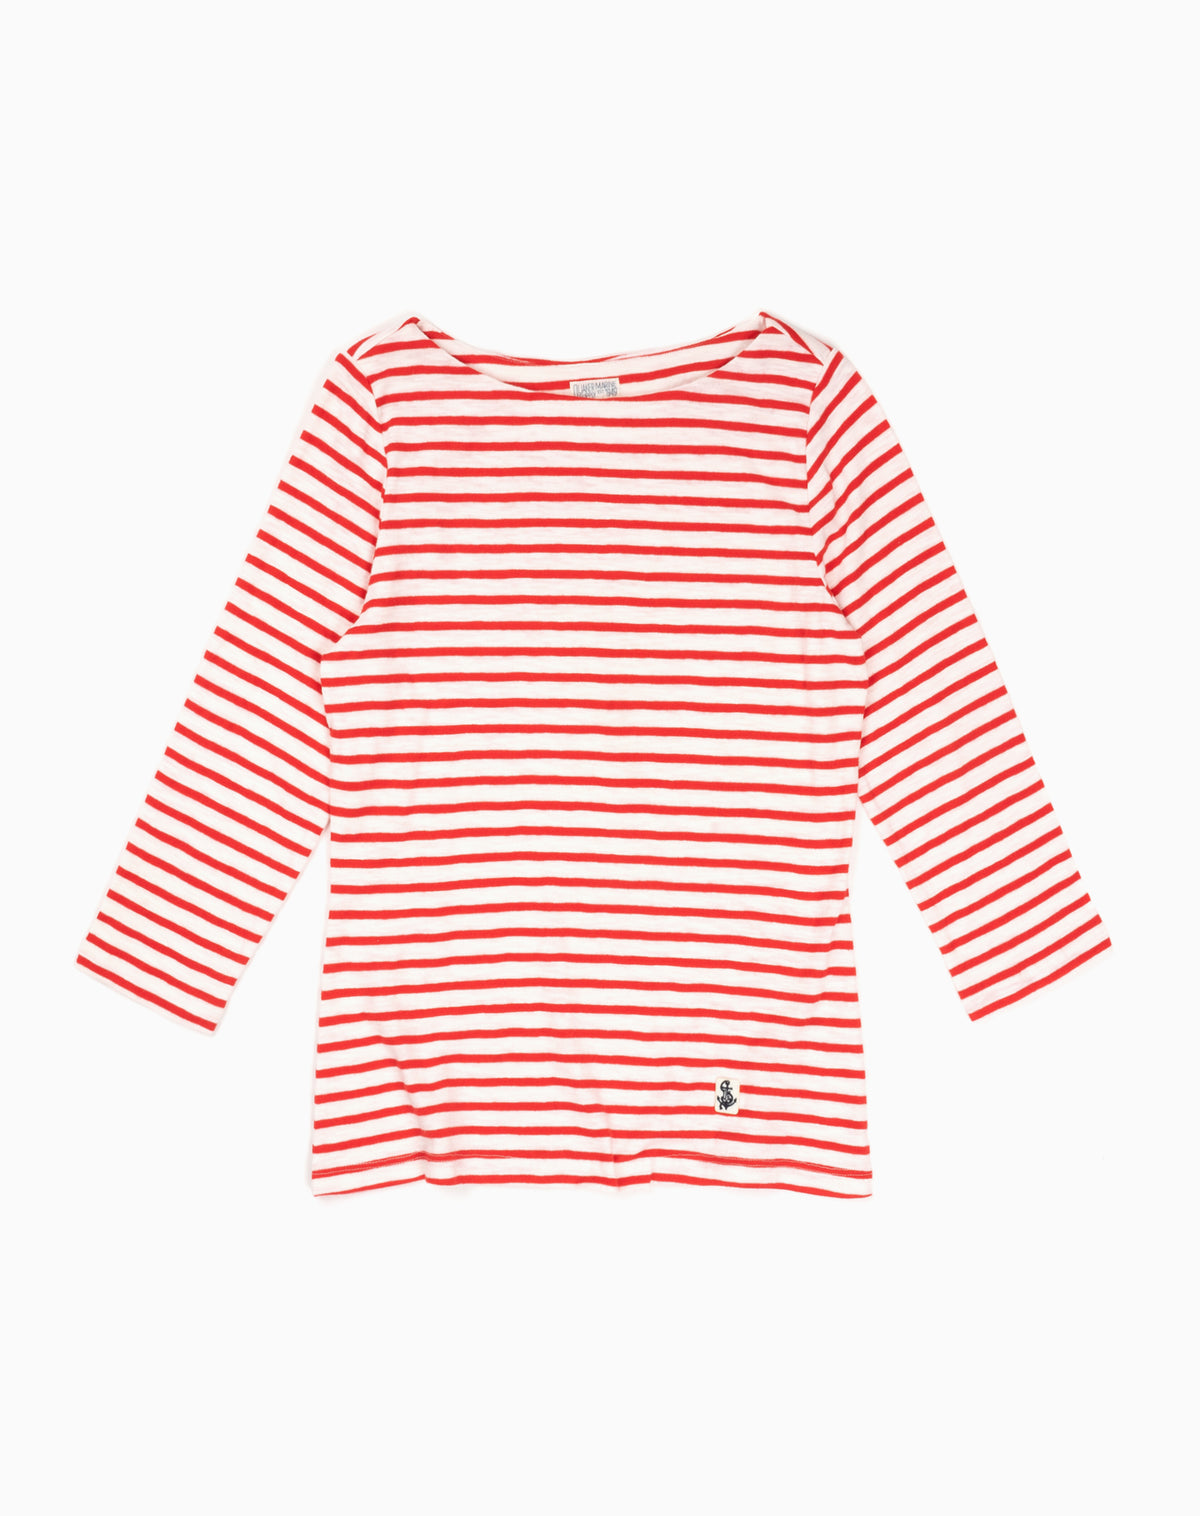 Women's French Sailor Tee in Red/White Stripe